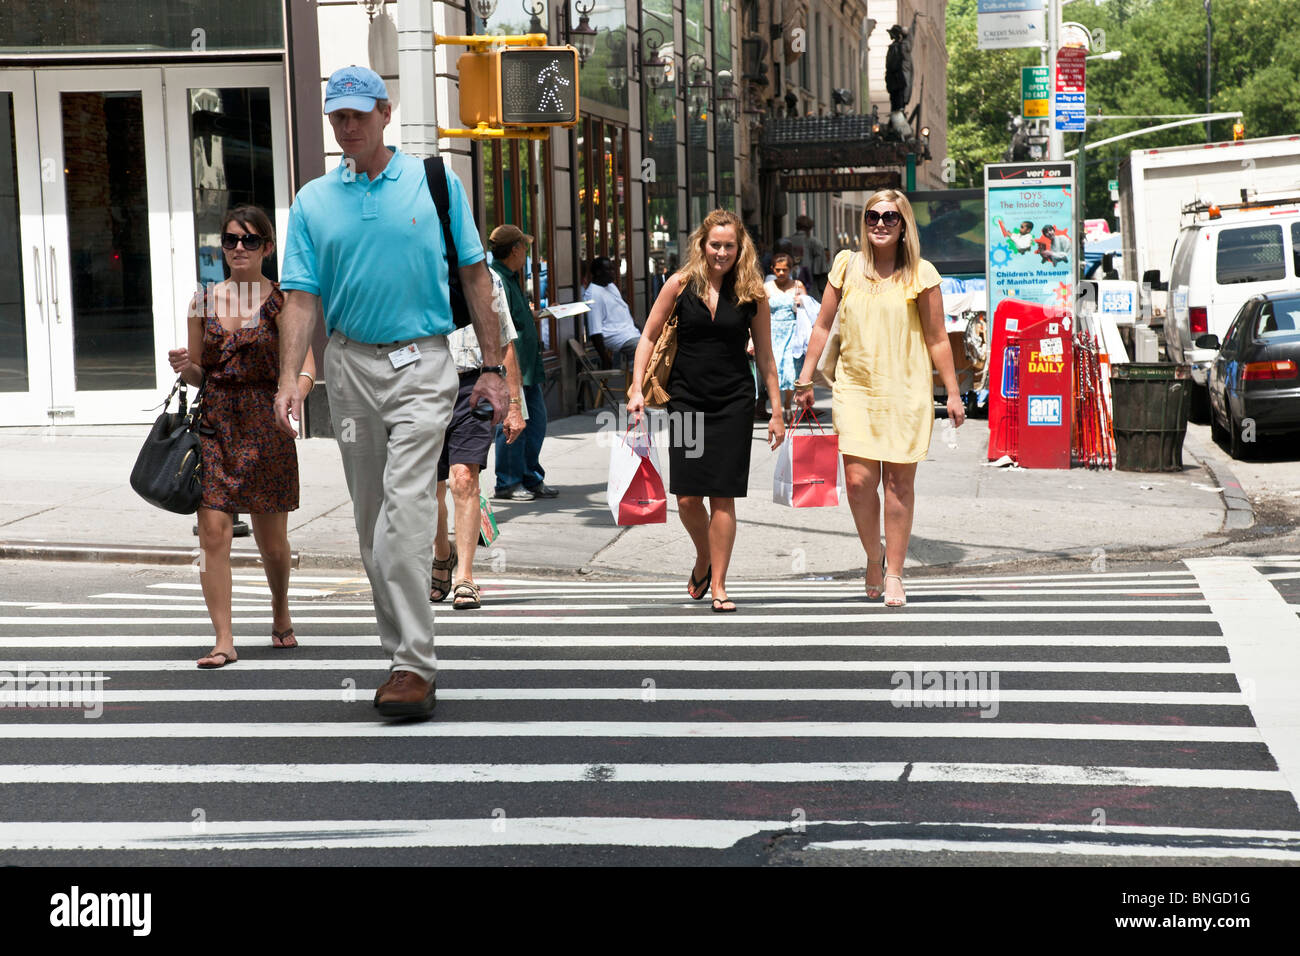 pedestrians including two pretty girlfriends in summer dresses carrying identical shopping bags cross 57th Street - Stock Image